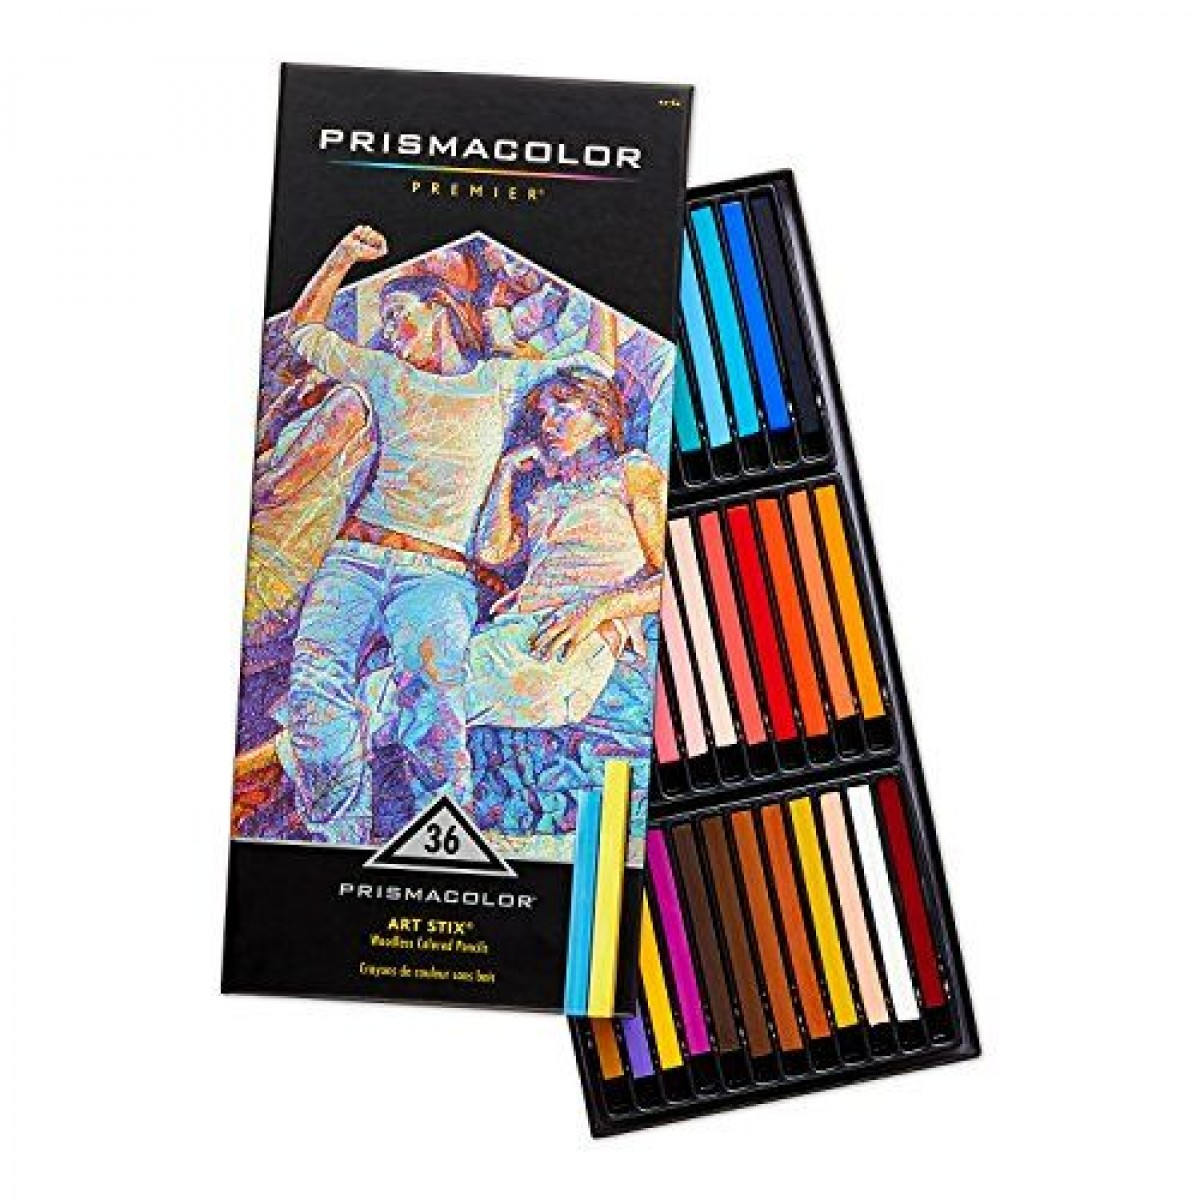 PrismaColor ART STIX Woodless Colored Pencils 36-Set